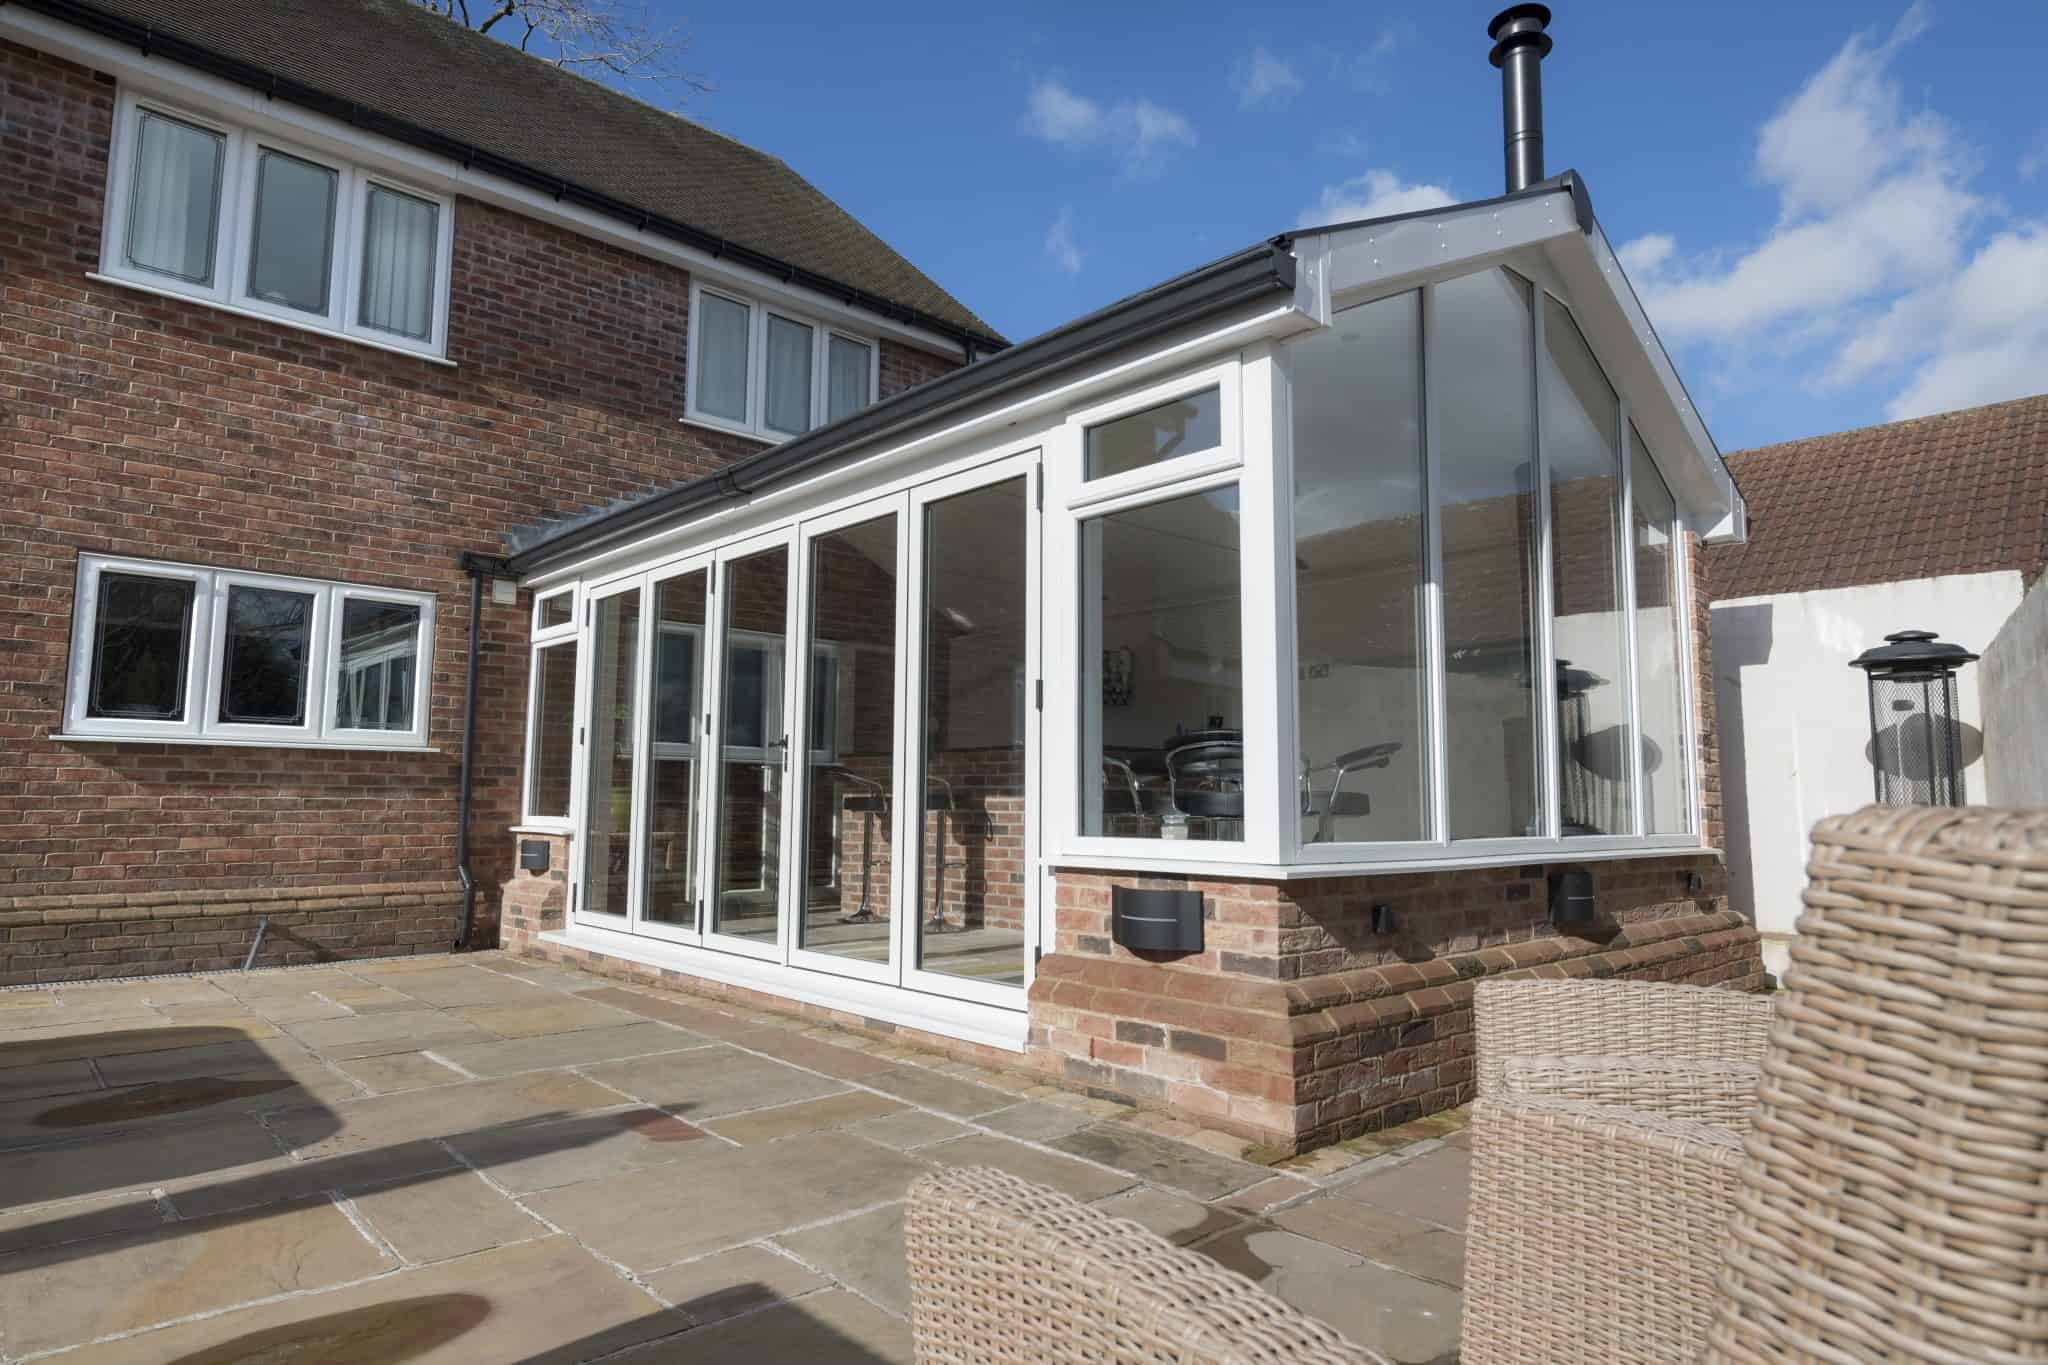 bi-fold doors on extension